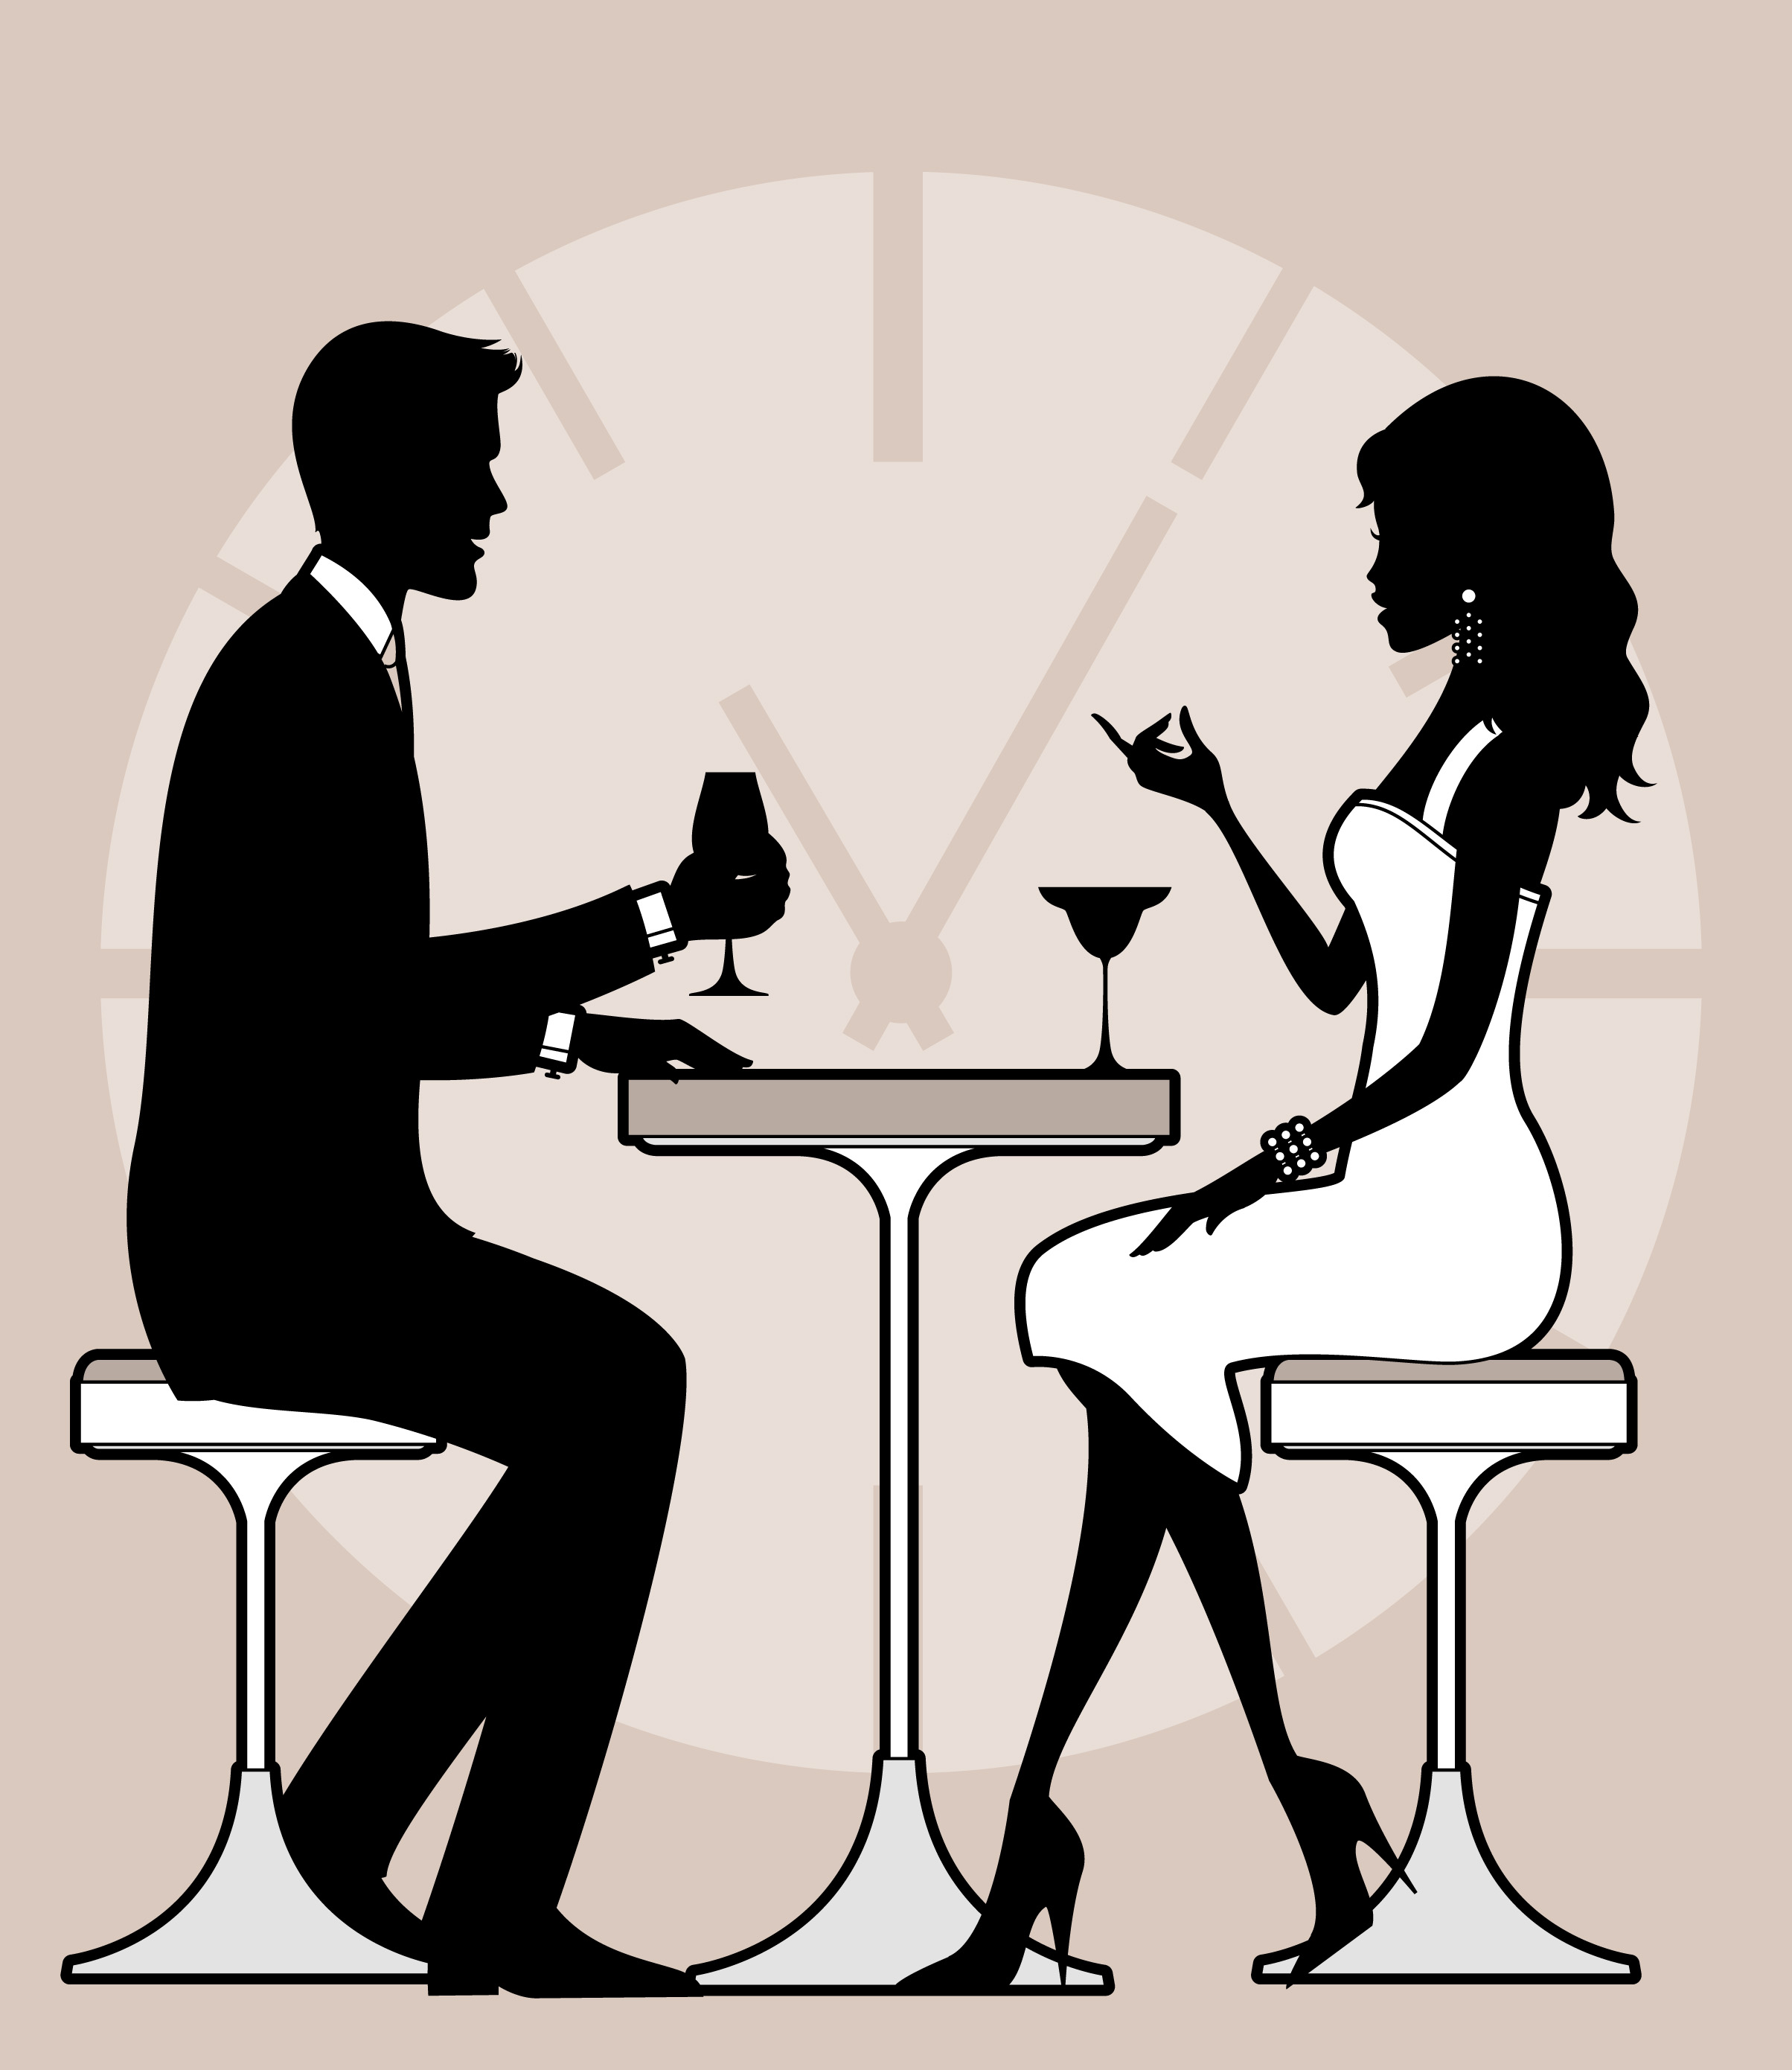 albania women Solutions - Insights Speed Dating